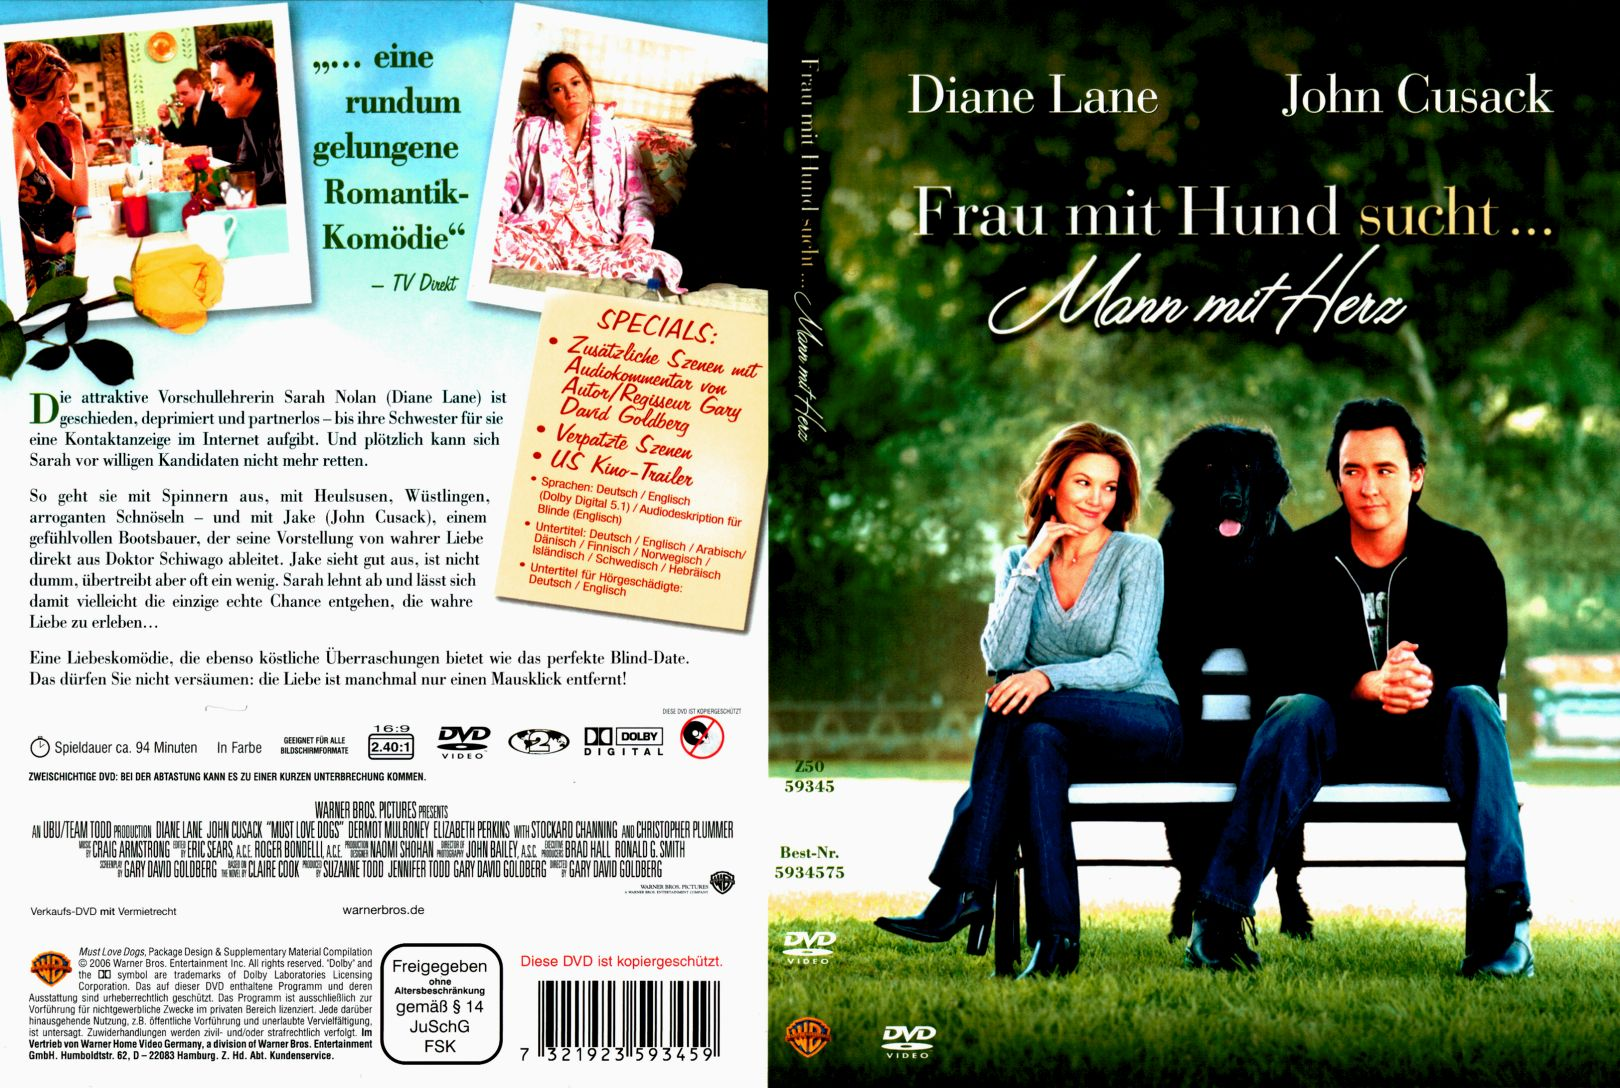 Man n sucht frau dvd [PUNIQRANDLINE-(au-dating-names.txt) 42